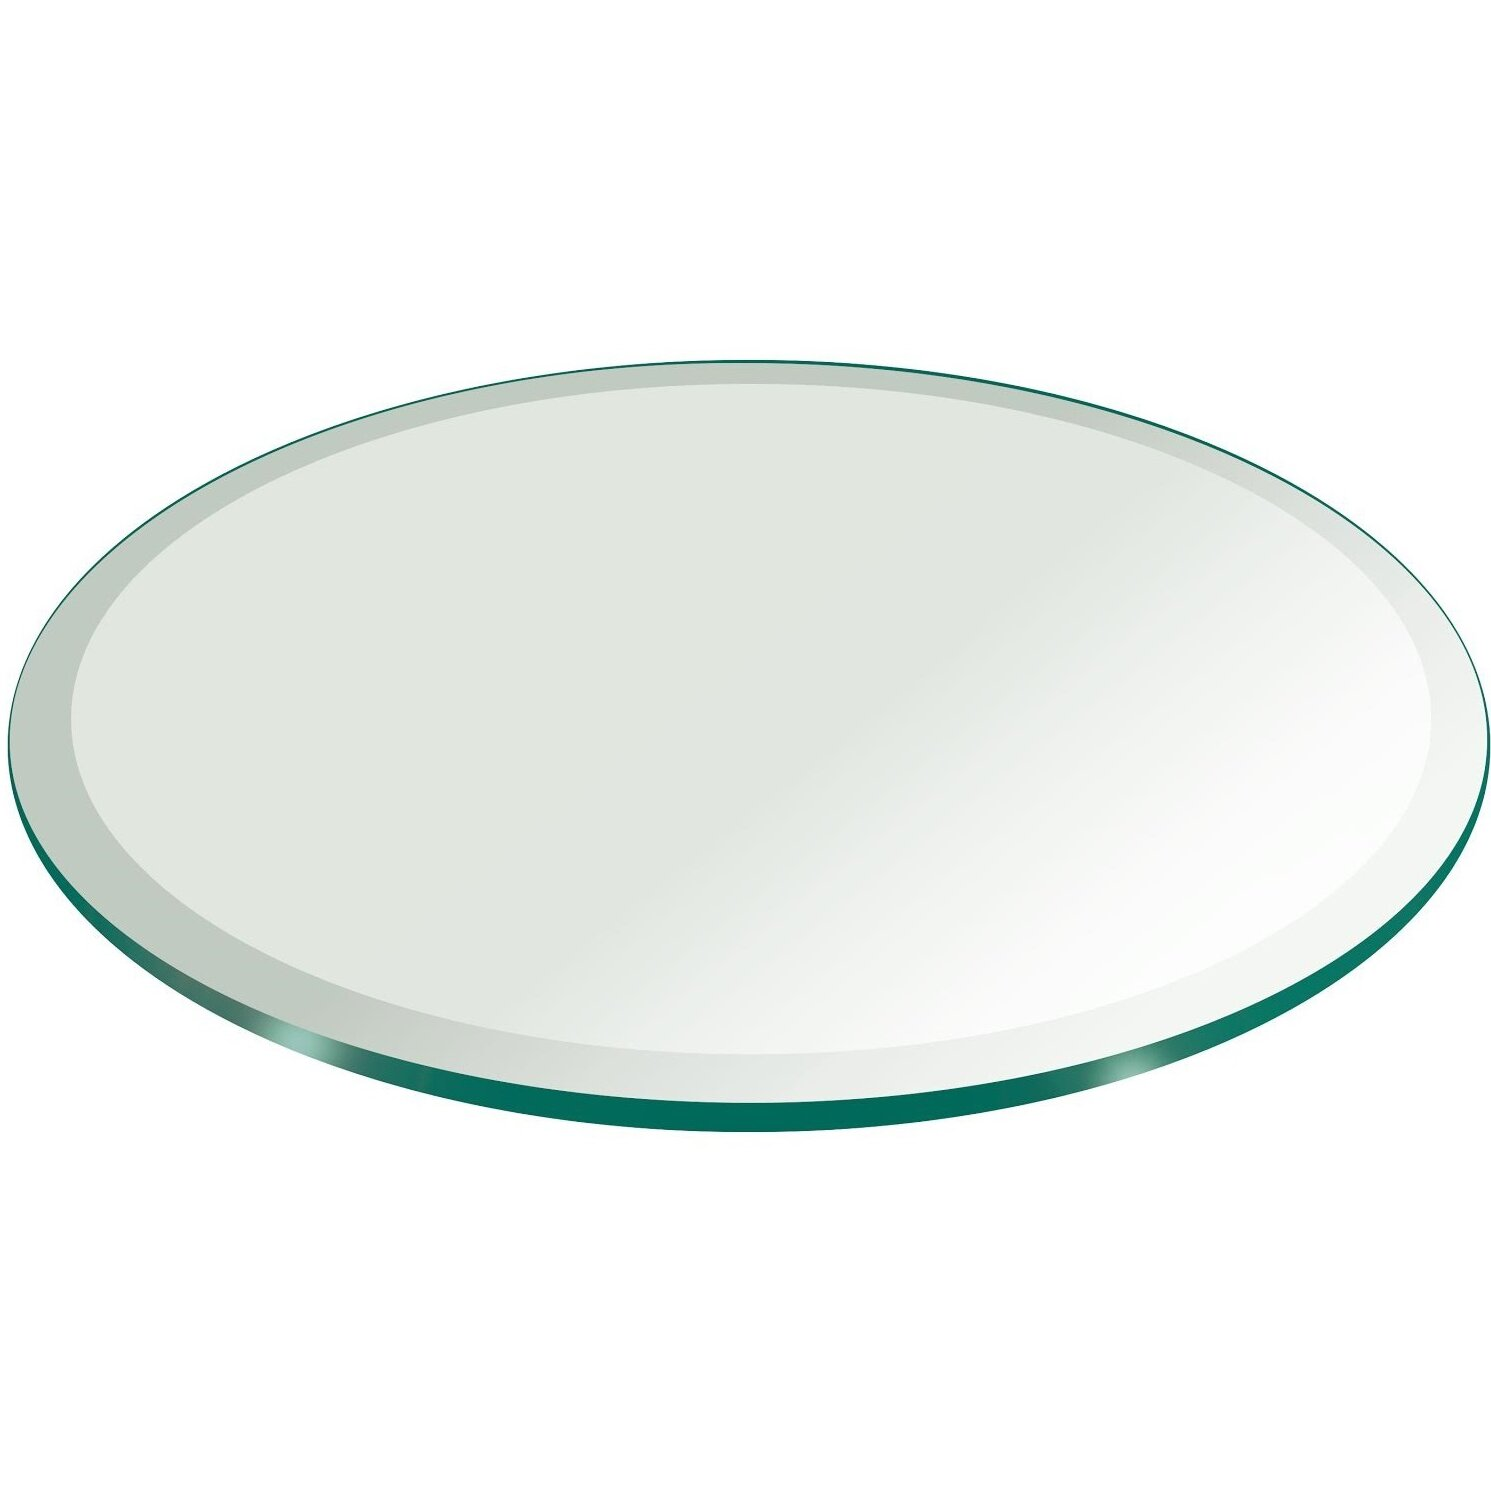 Fab glass and mirror round beveled edge tempered